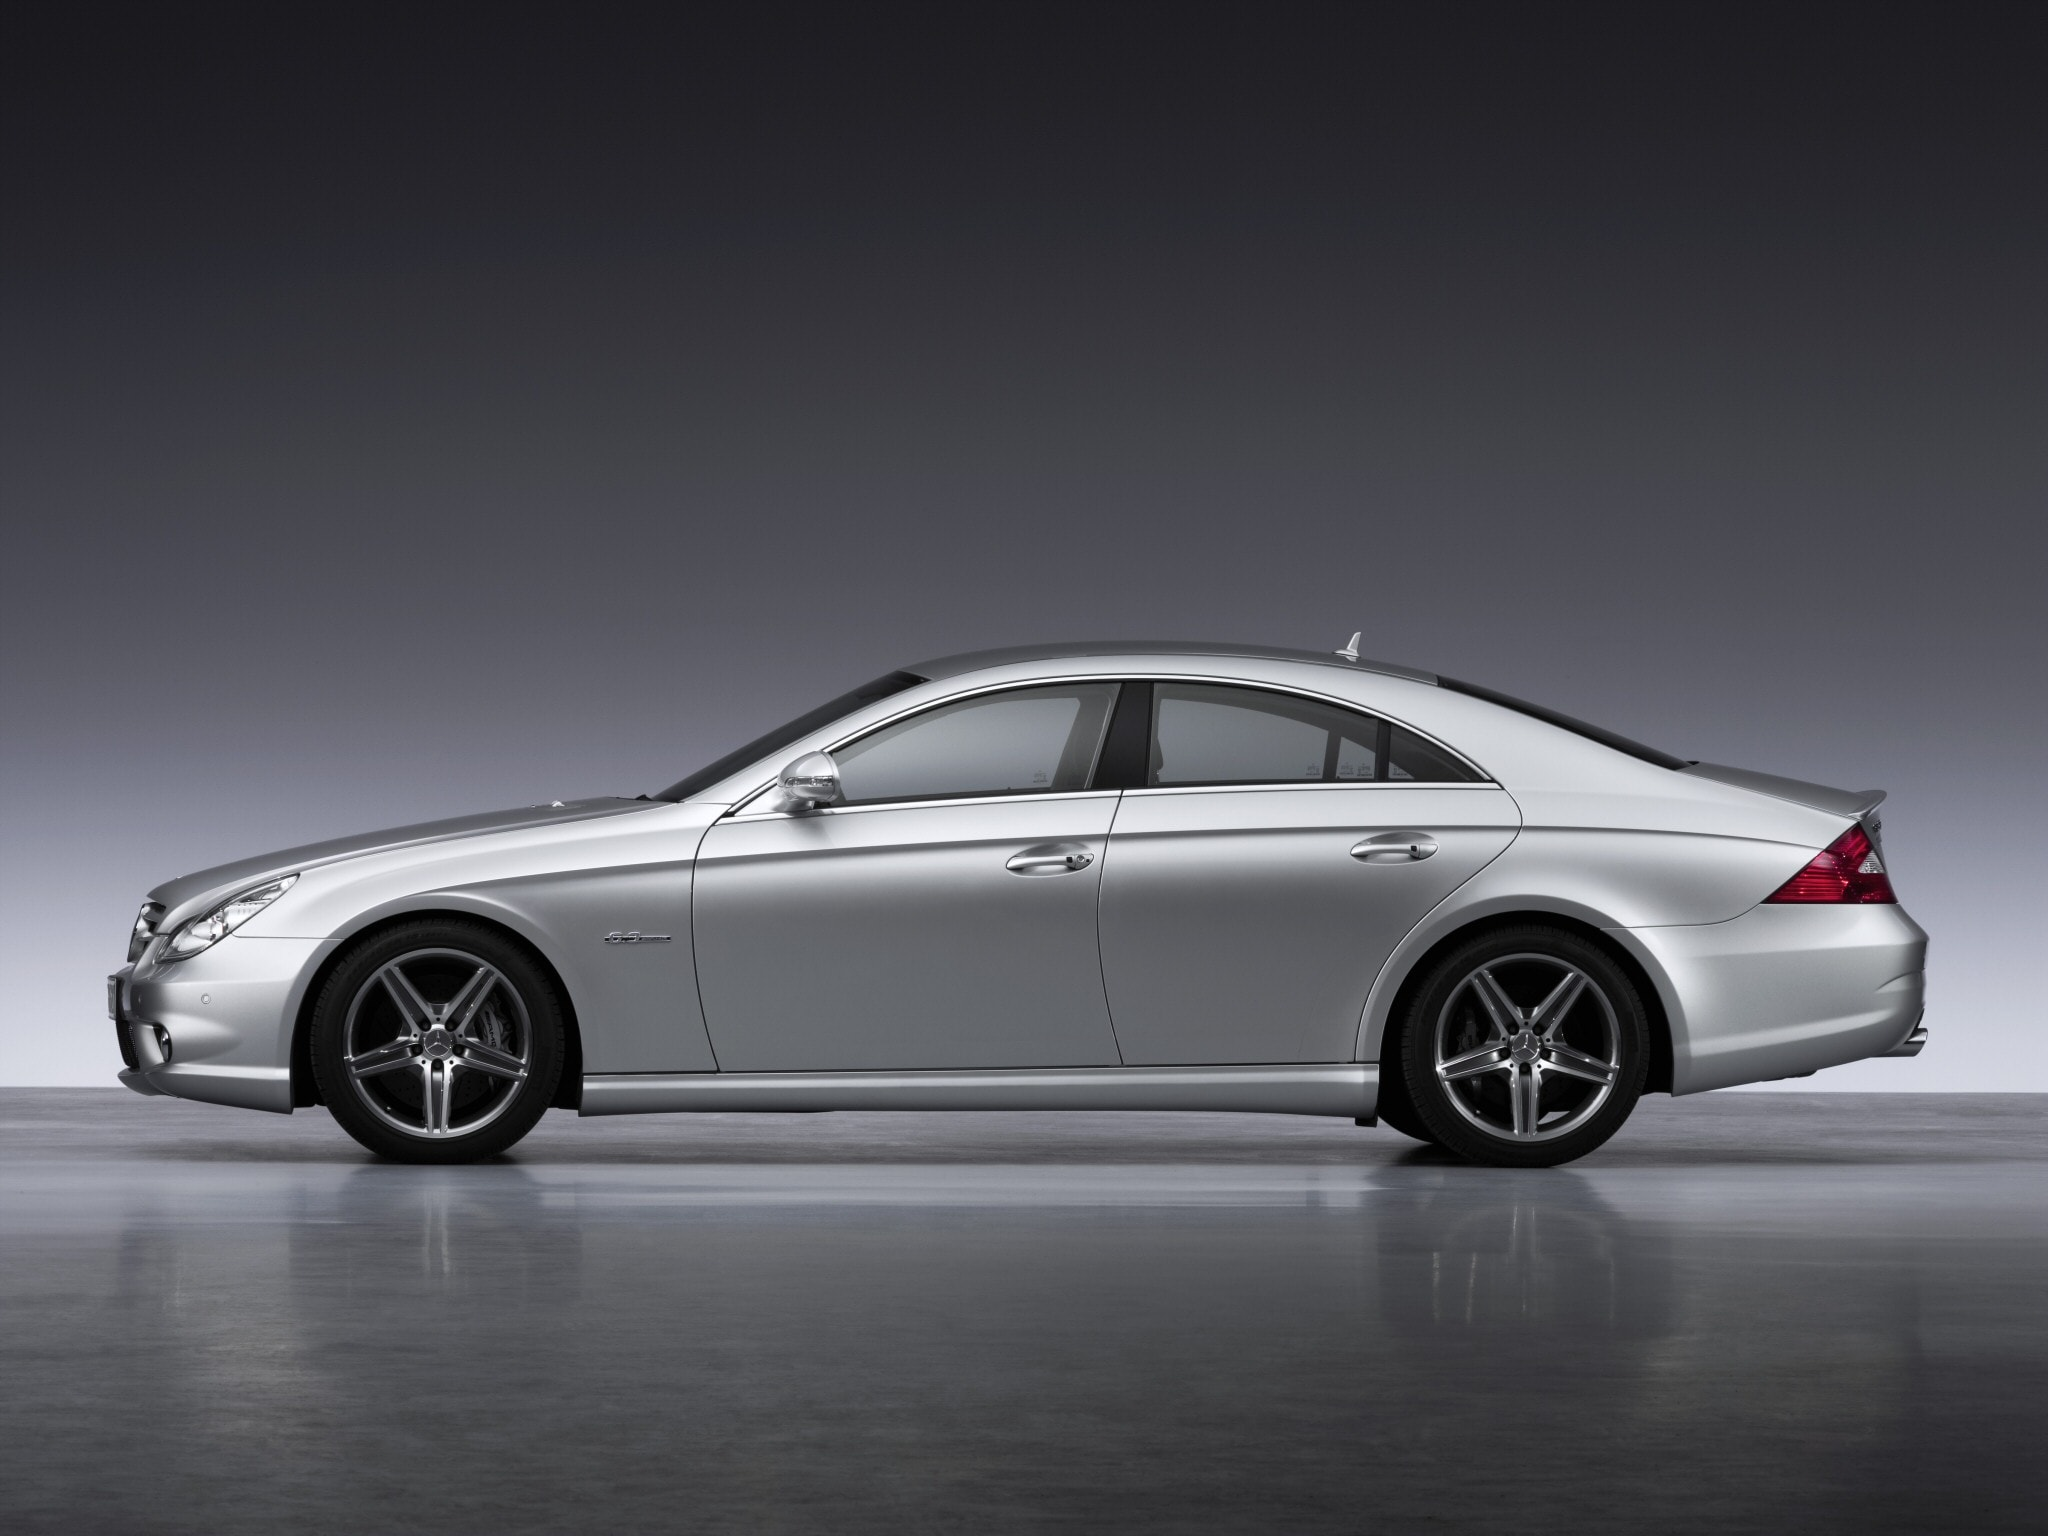 2005 Mercedes-Benz CLS Screensavers